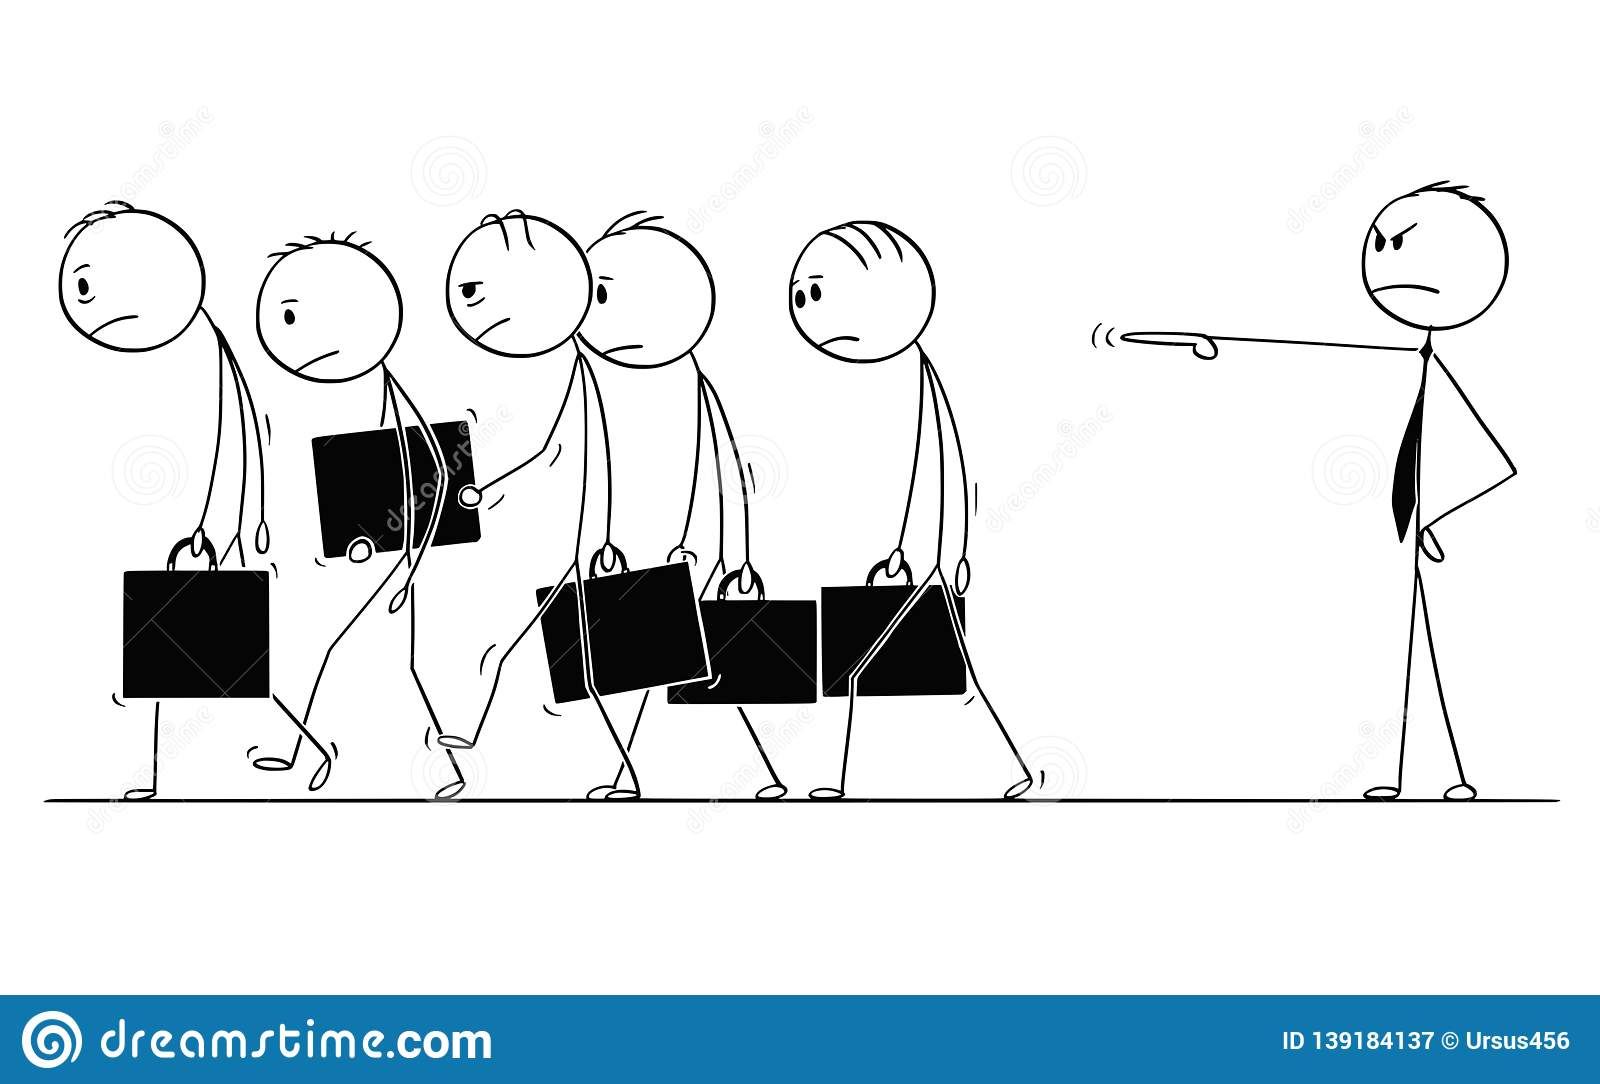 Cartoon of group of sad and depressed businessmen or